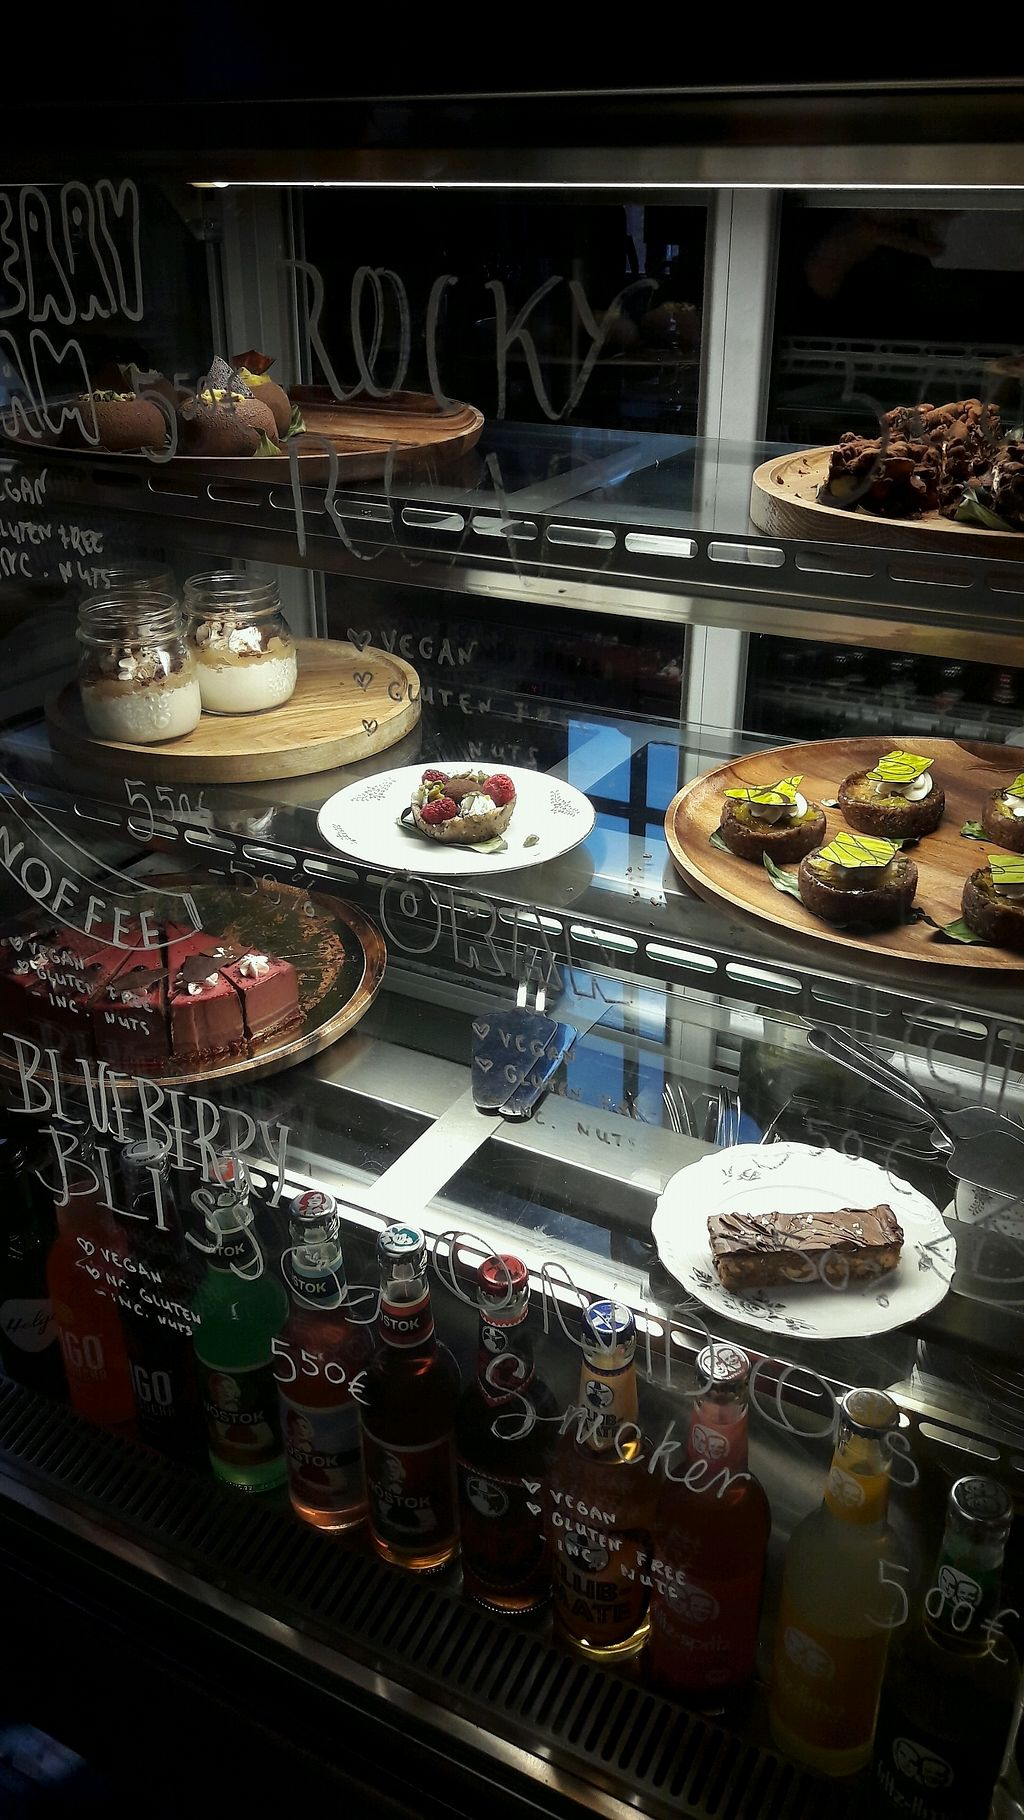 """Photo of ONDA  by <a href=""""/members/profile/reissausta%20ja%20ruokaa"""">reissausta ja ruokaa</a> <br/>these cakes are vegan <br/> November 20, 2017  - <a href='/contact/abuse/image/53836/327534'>Report</a>"""